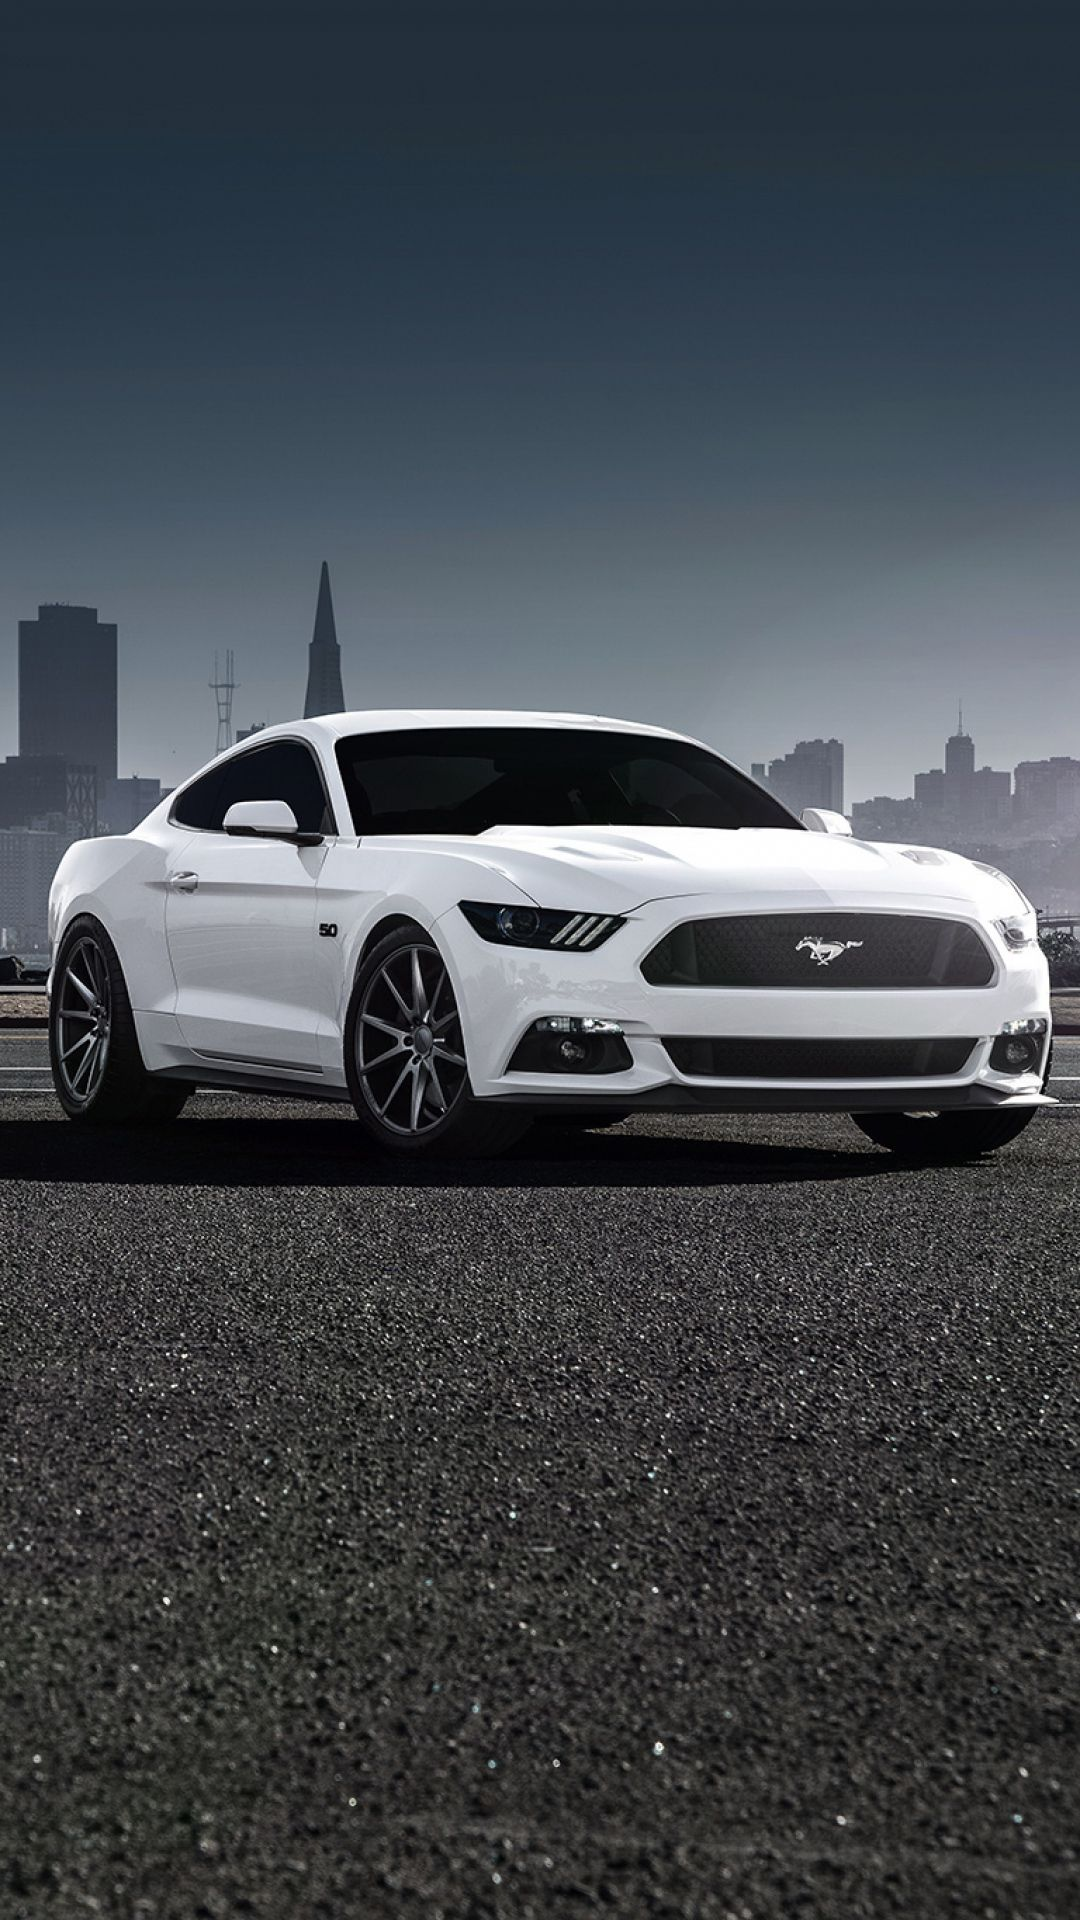 Pin by Abdulla Khan on cArs & BikES Mustang cars, Ford